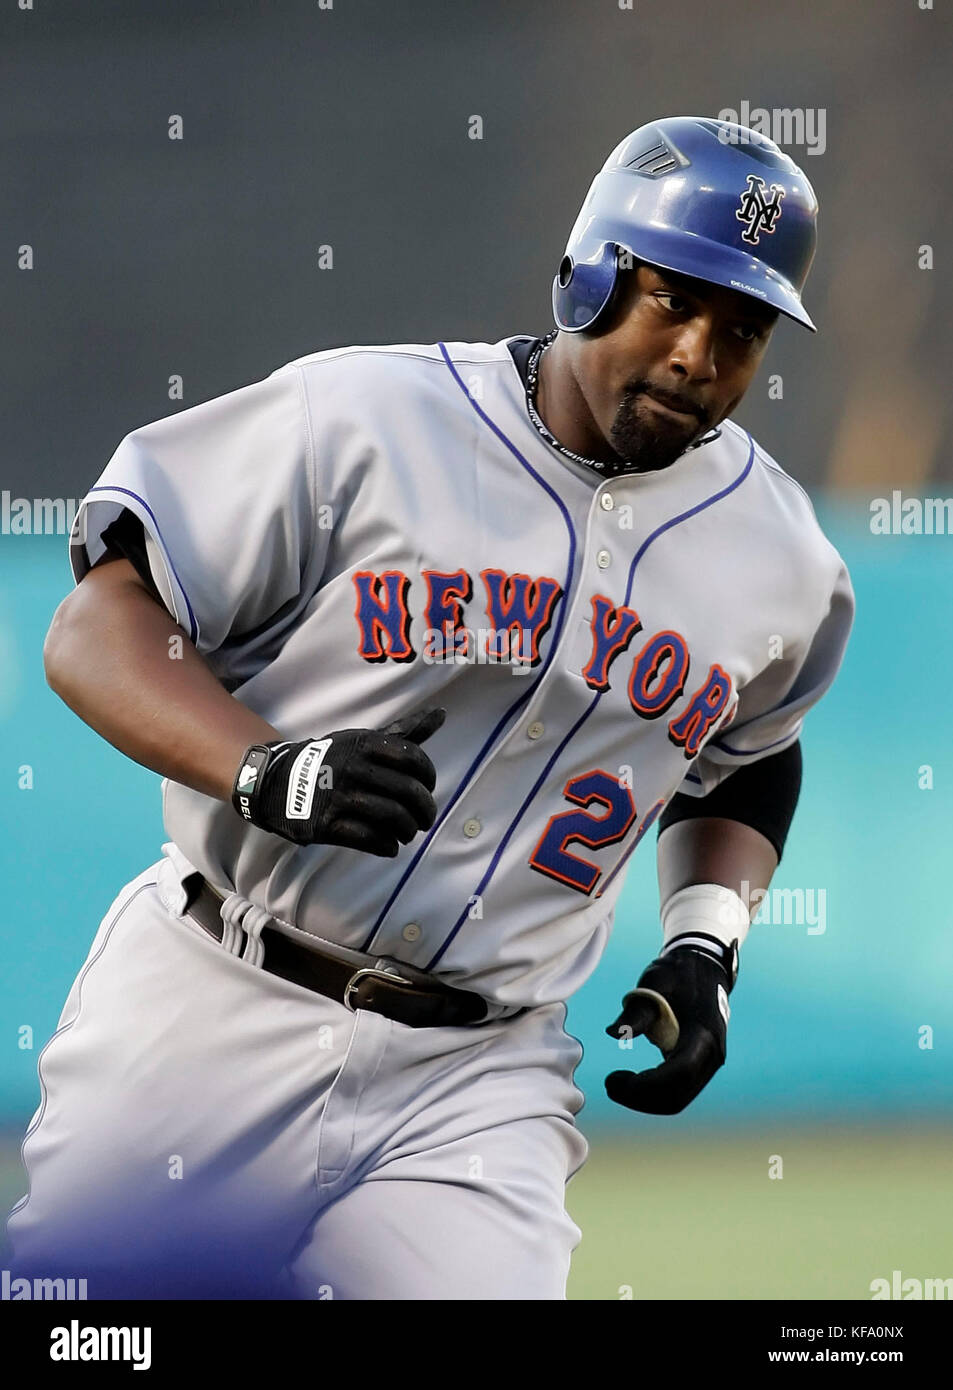 best website 6dae2 e3718 New York Mets' Carlos Delgado circles the bases after ...